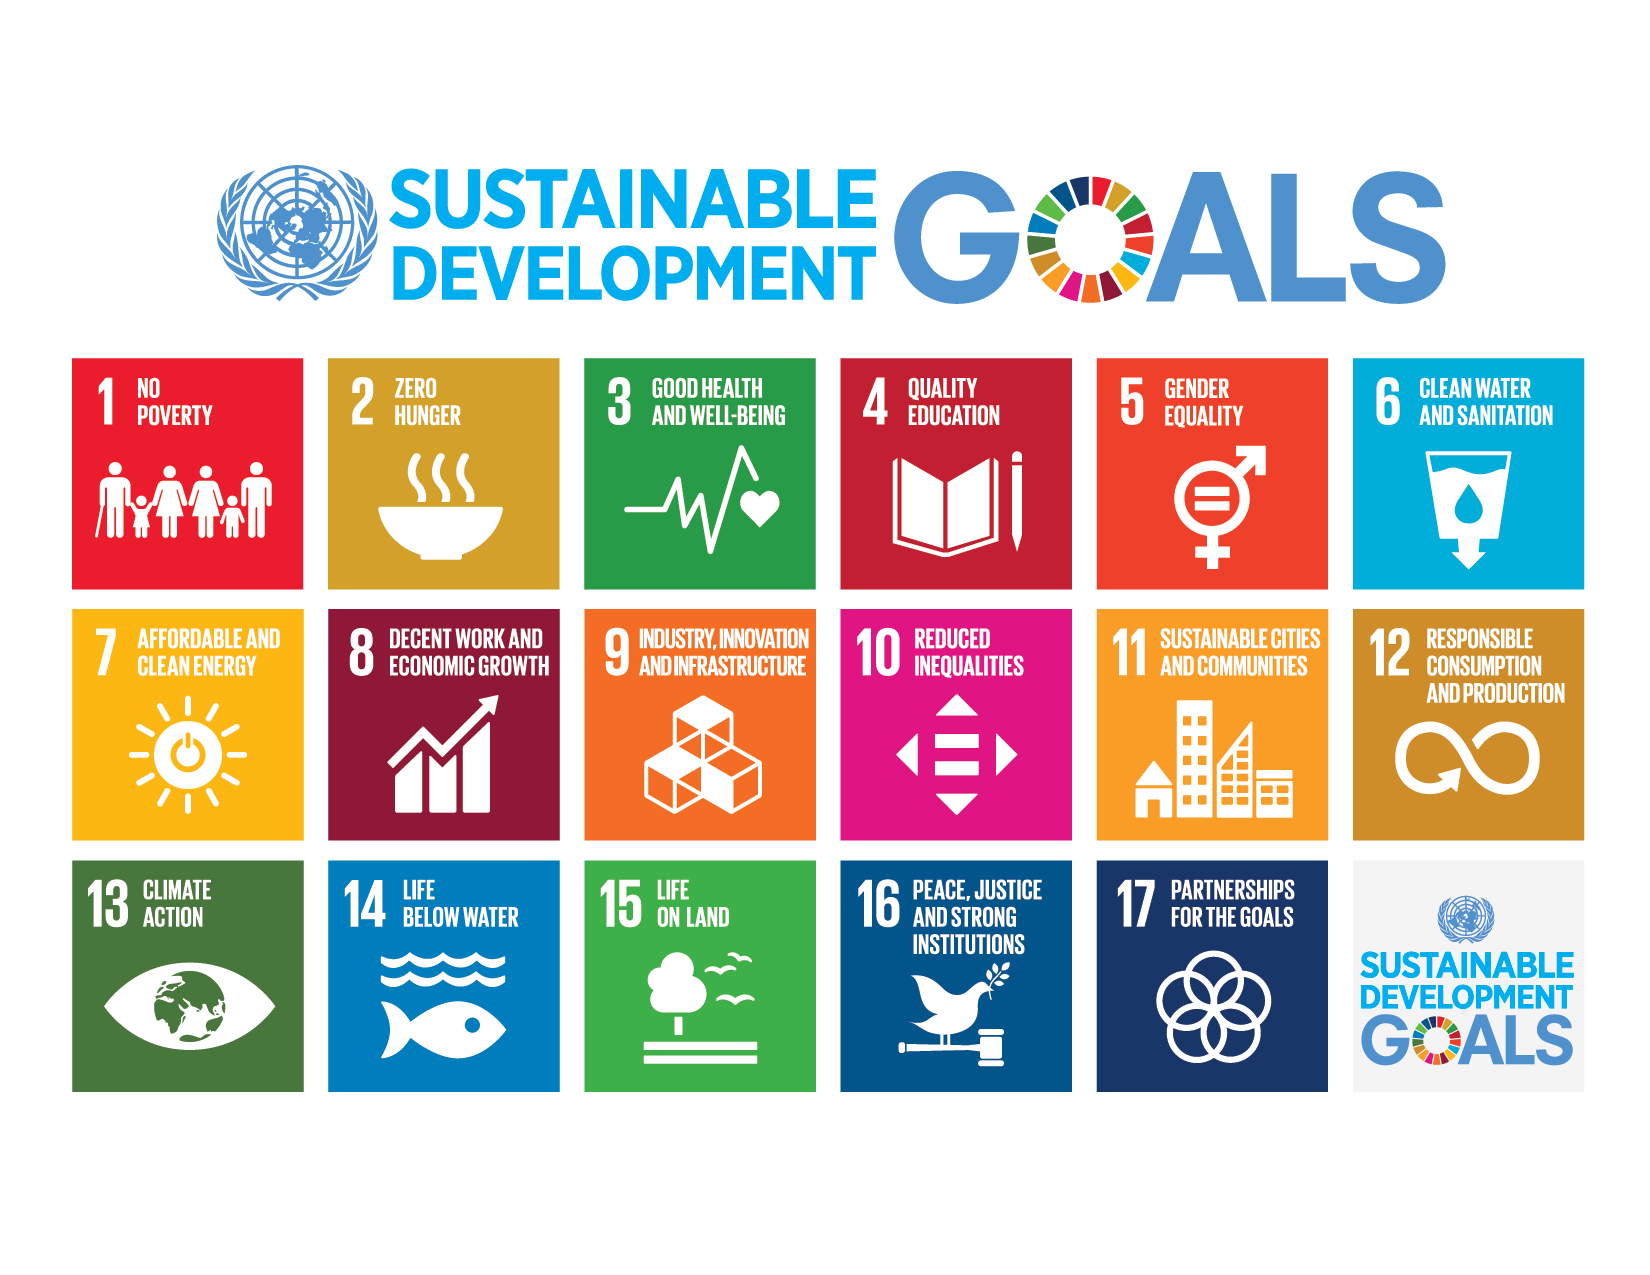 http://files.b-token.be/files/568/original/E_2018_SDG_Poster_with_UN_emblem.png?1540193586